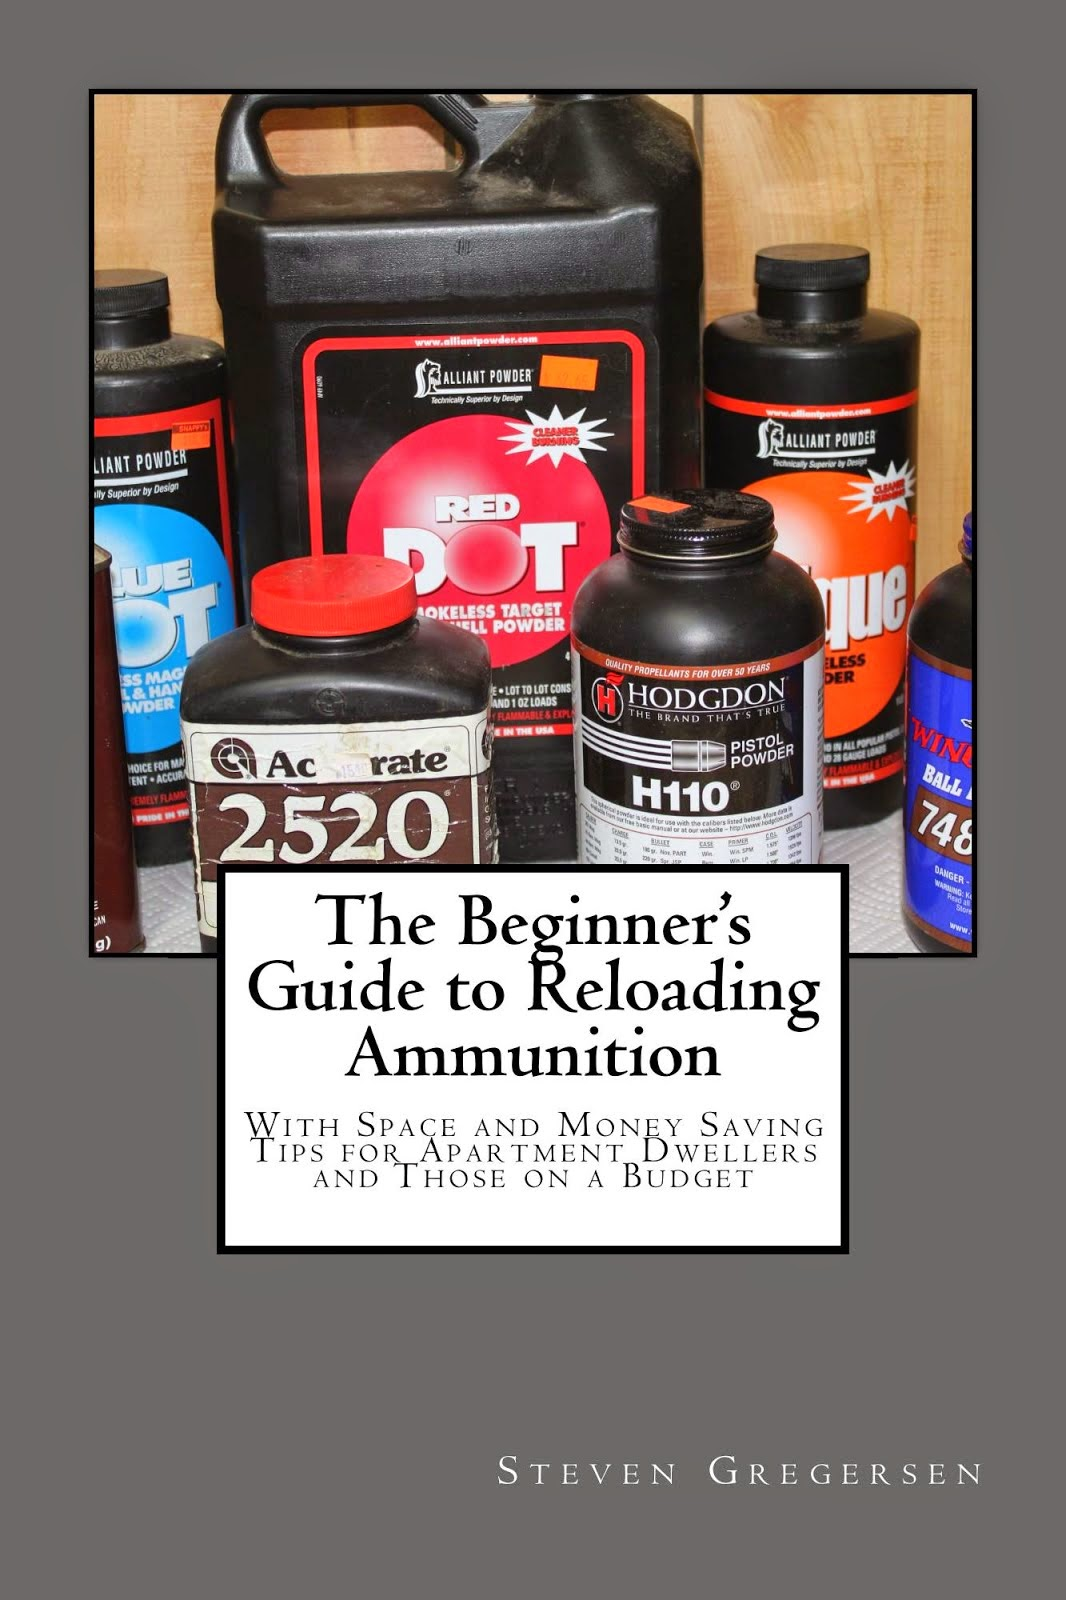 The Beginner's Guide to Reloading Ammunition